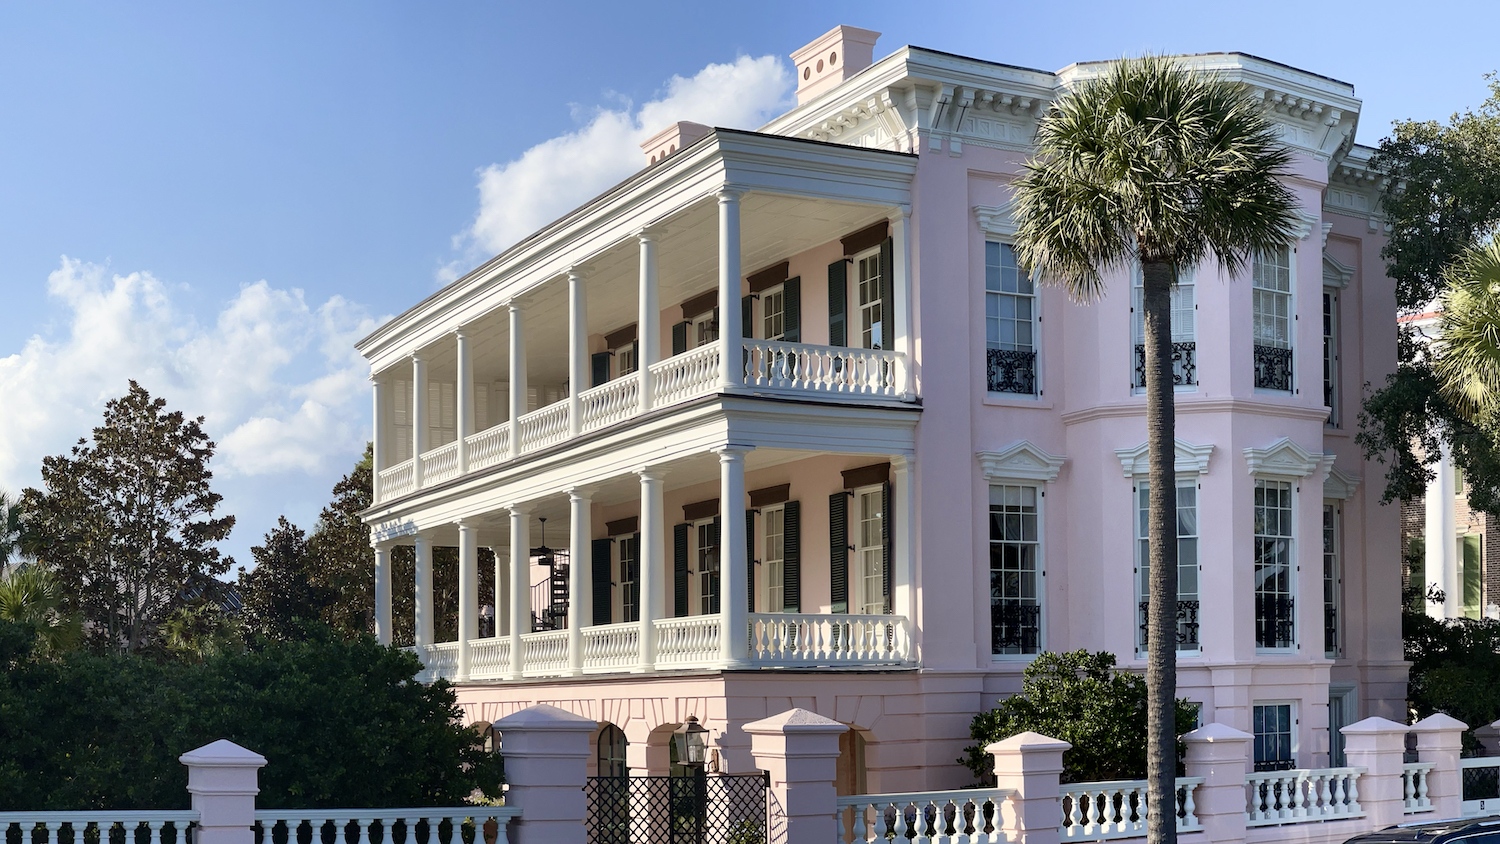 Giant old pink house on Bay Street in Charleston, SC